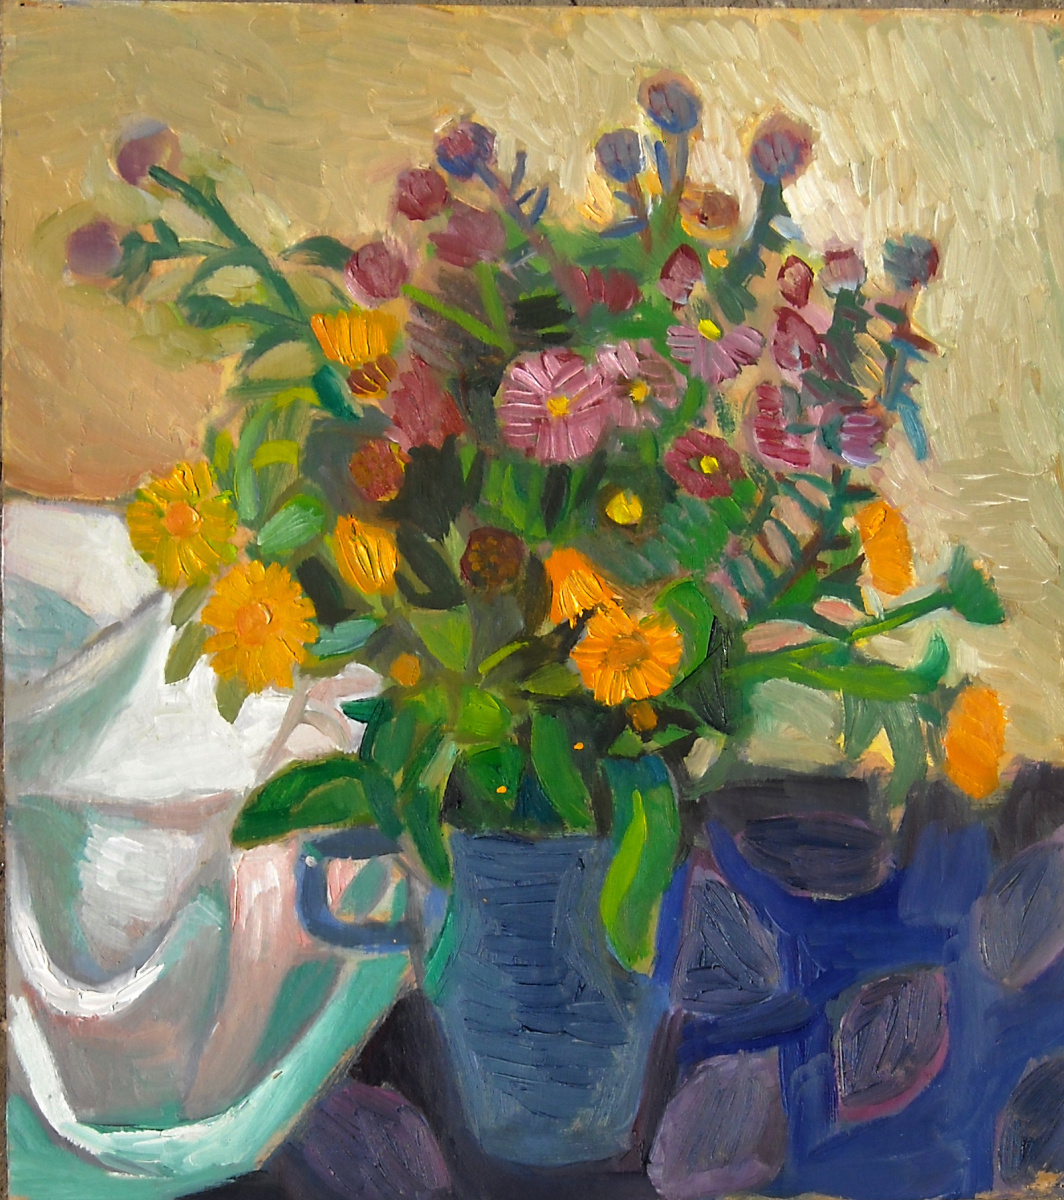 Stas Volostnych. FLOWERS